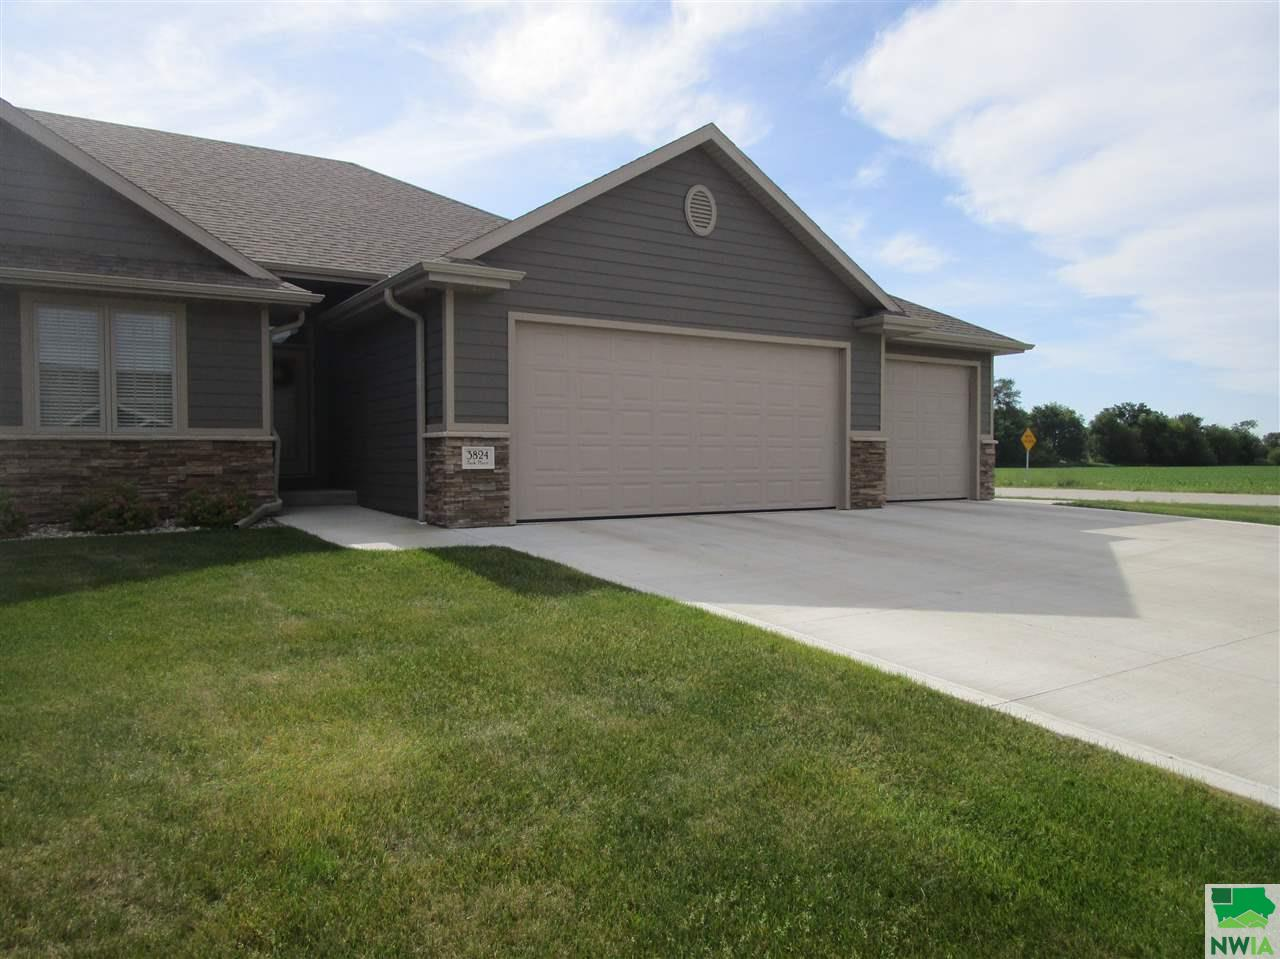 Property for sale at 3824 Park Place, South Sioux City,  NE 68776